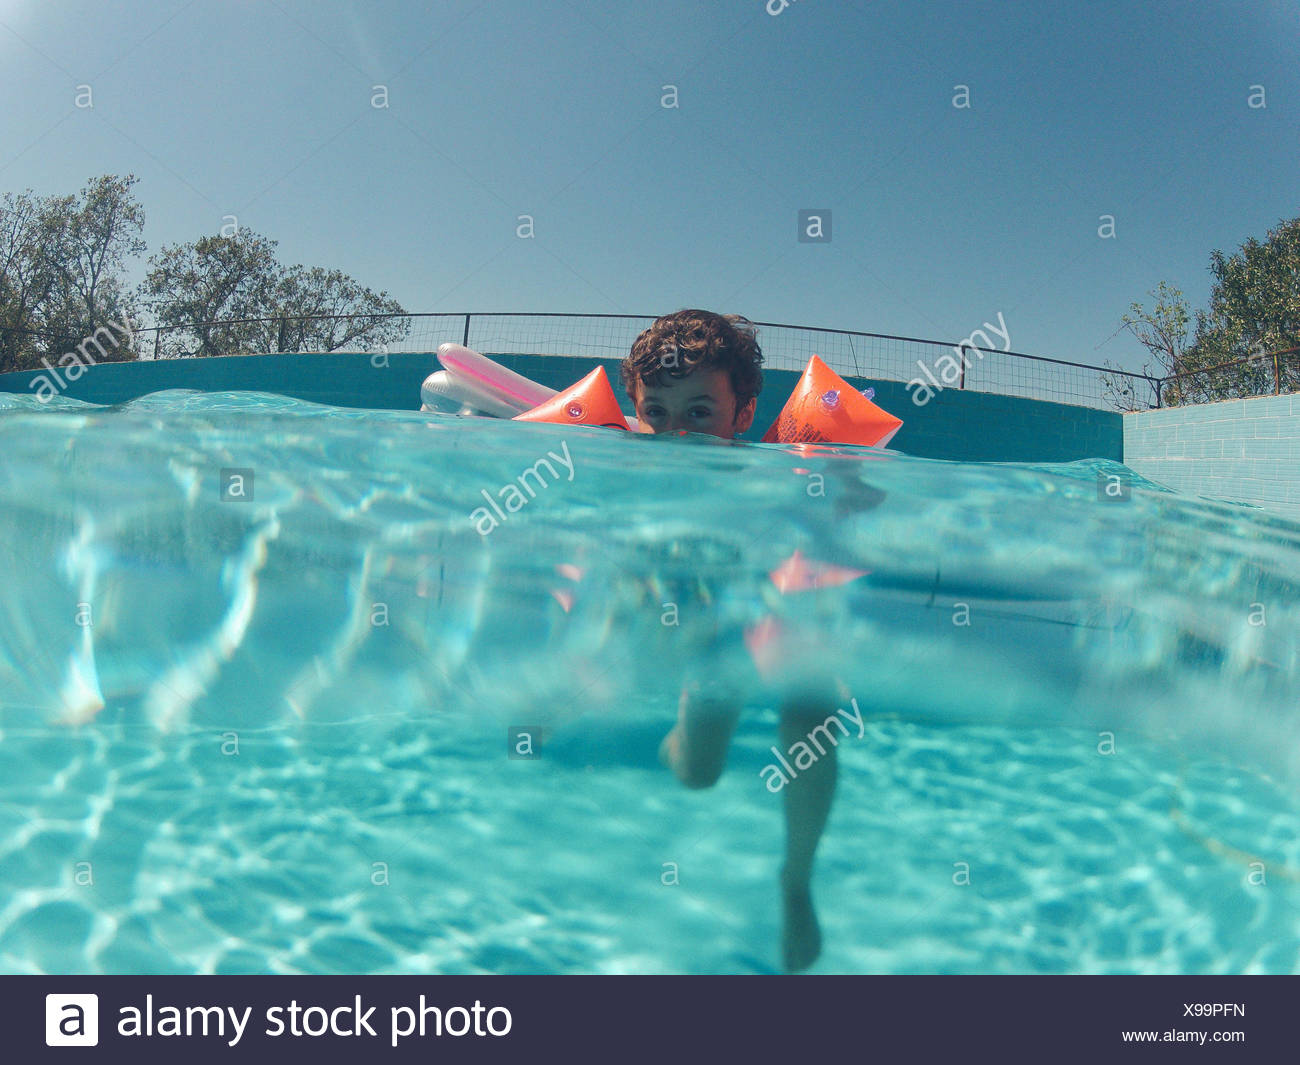 Portrait Of Boy Swimming In Pool Against Sky - Stock Image